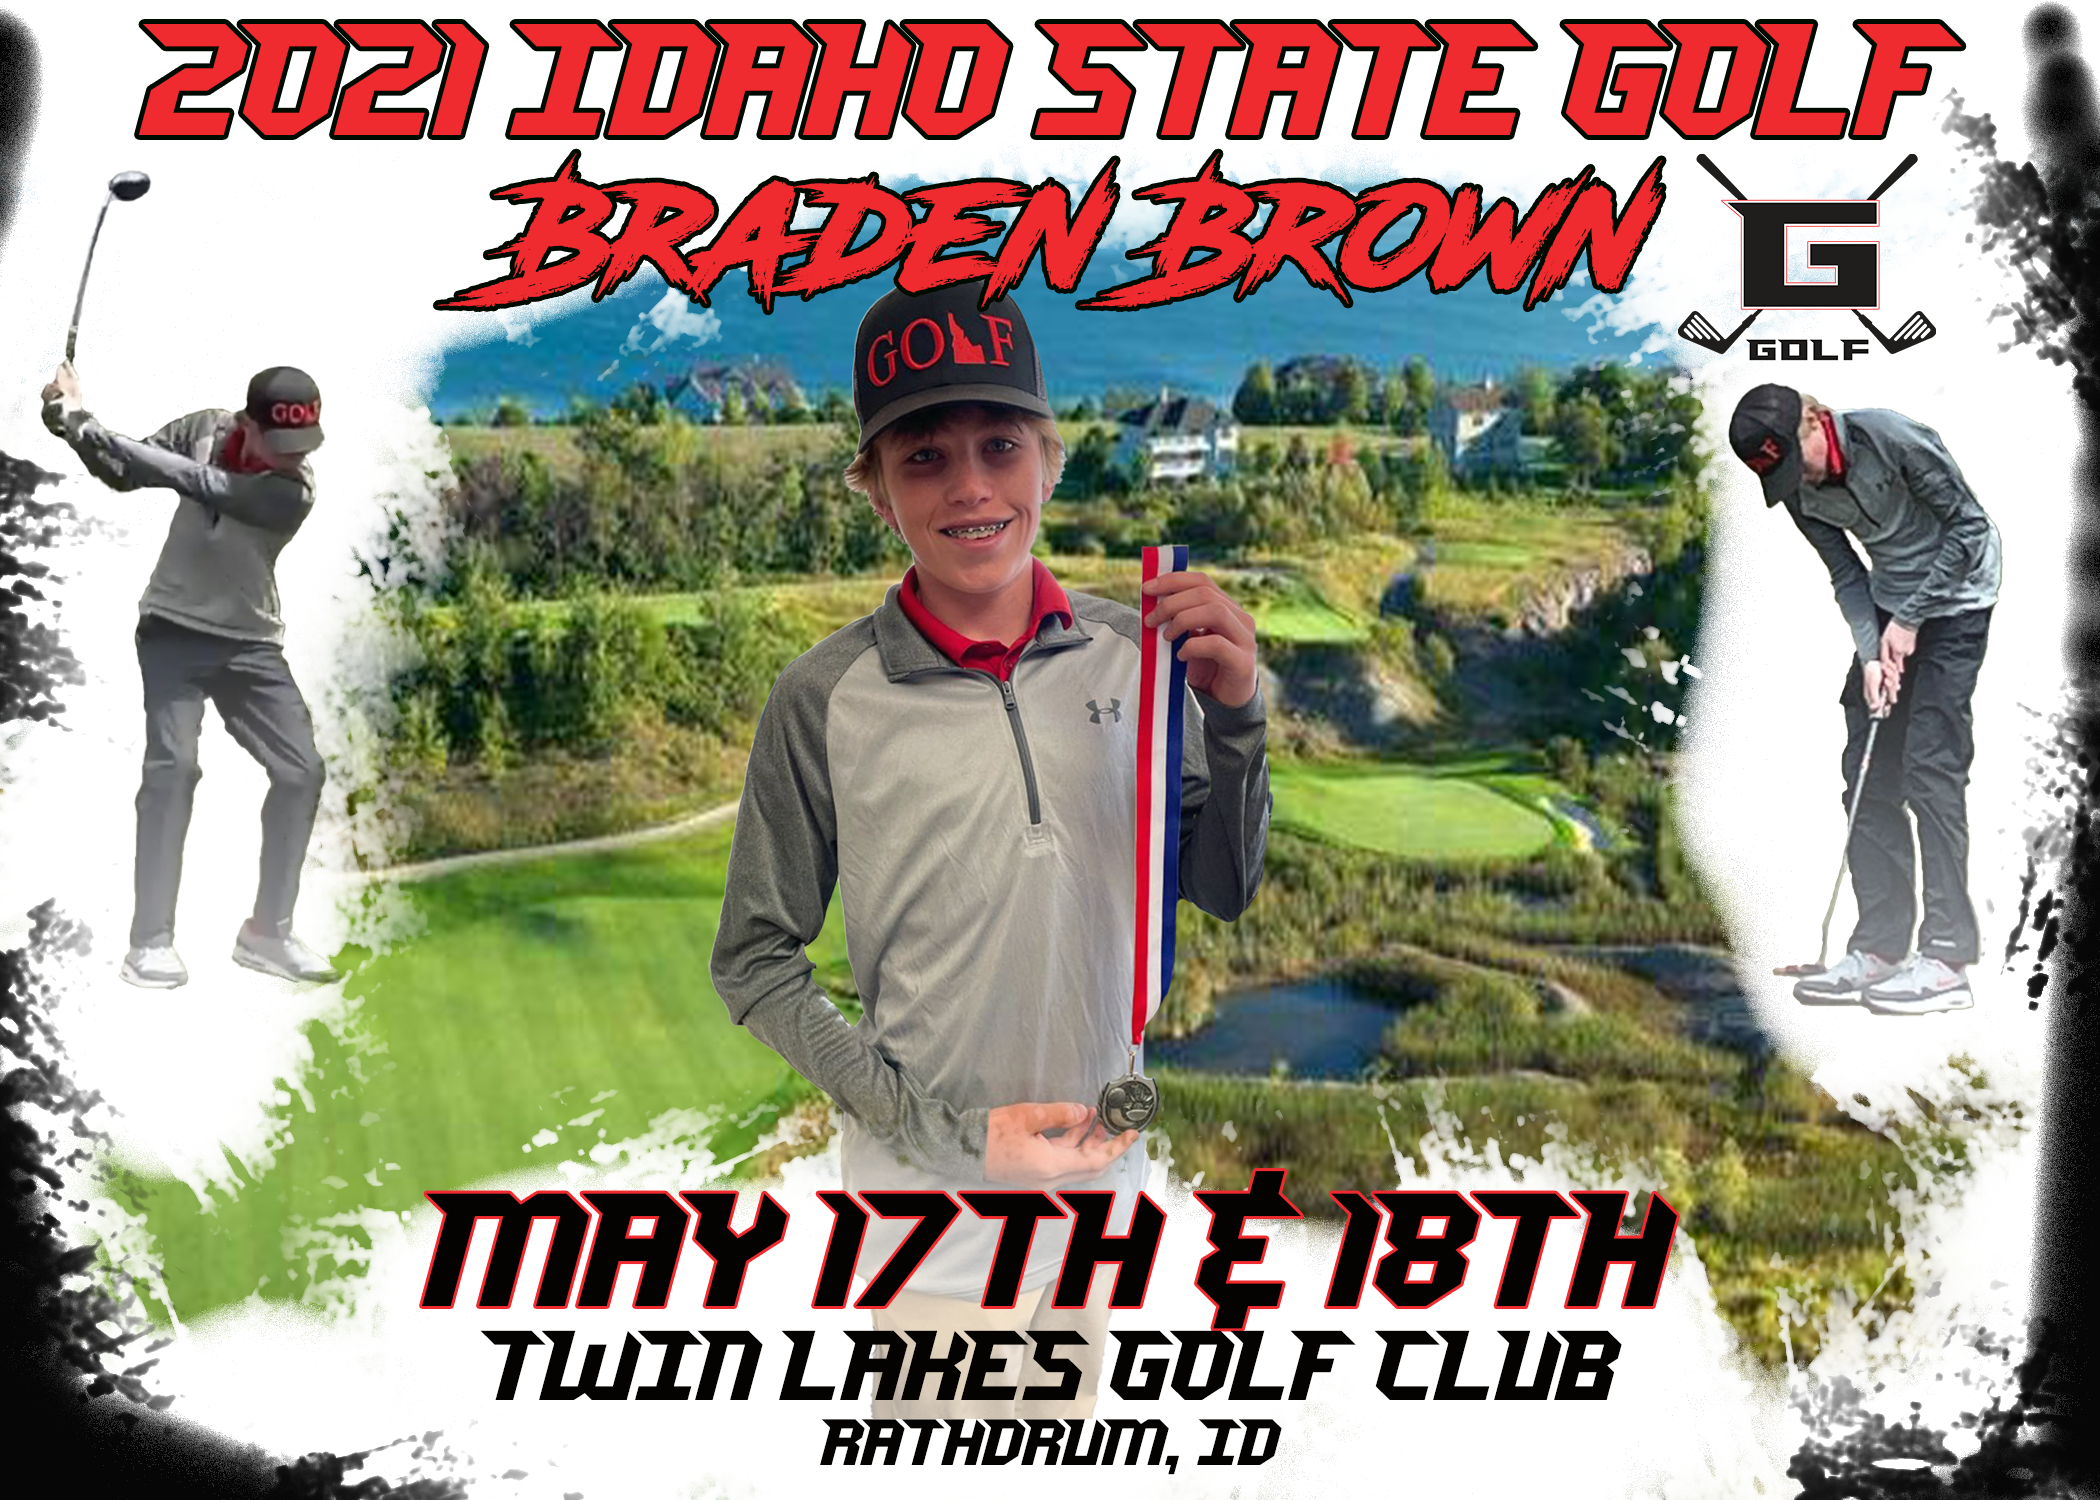 Braden Brown Image to State Golf Tournament 2021